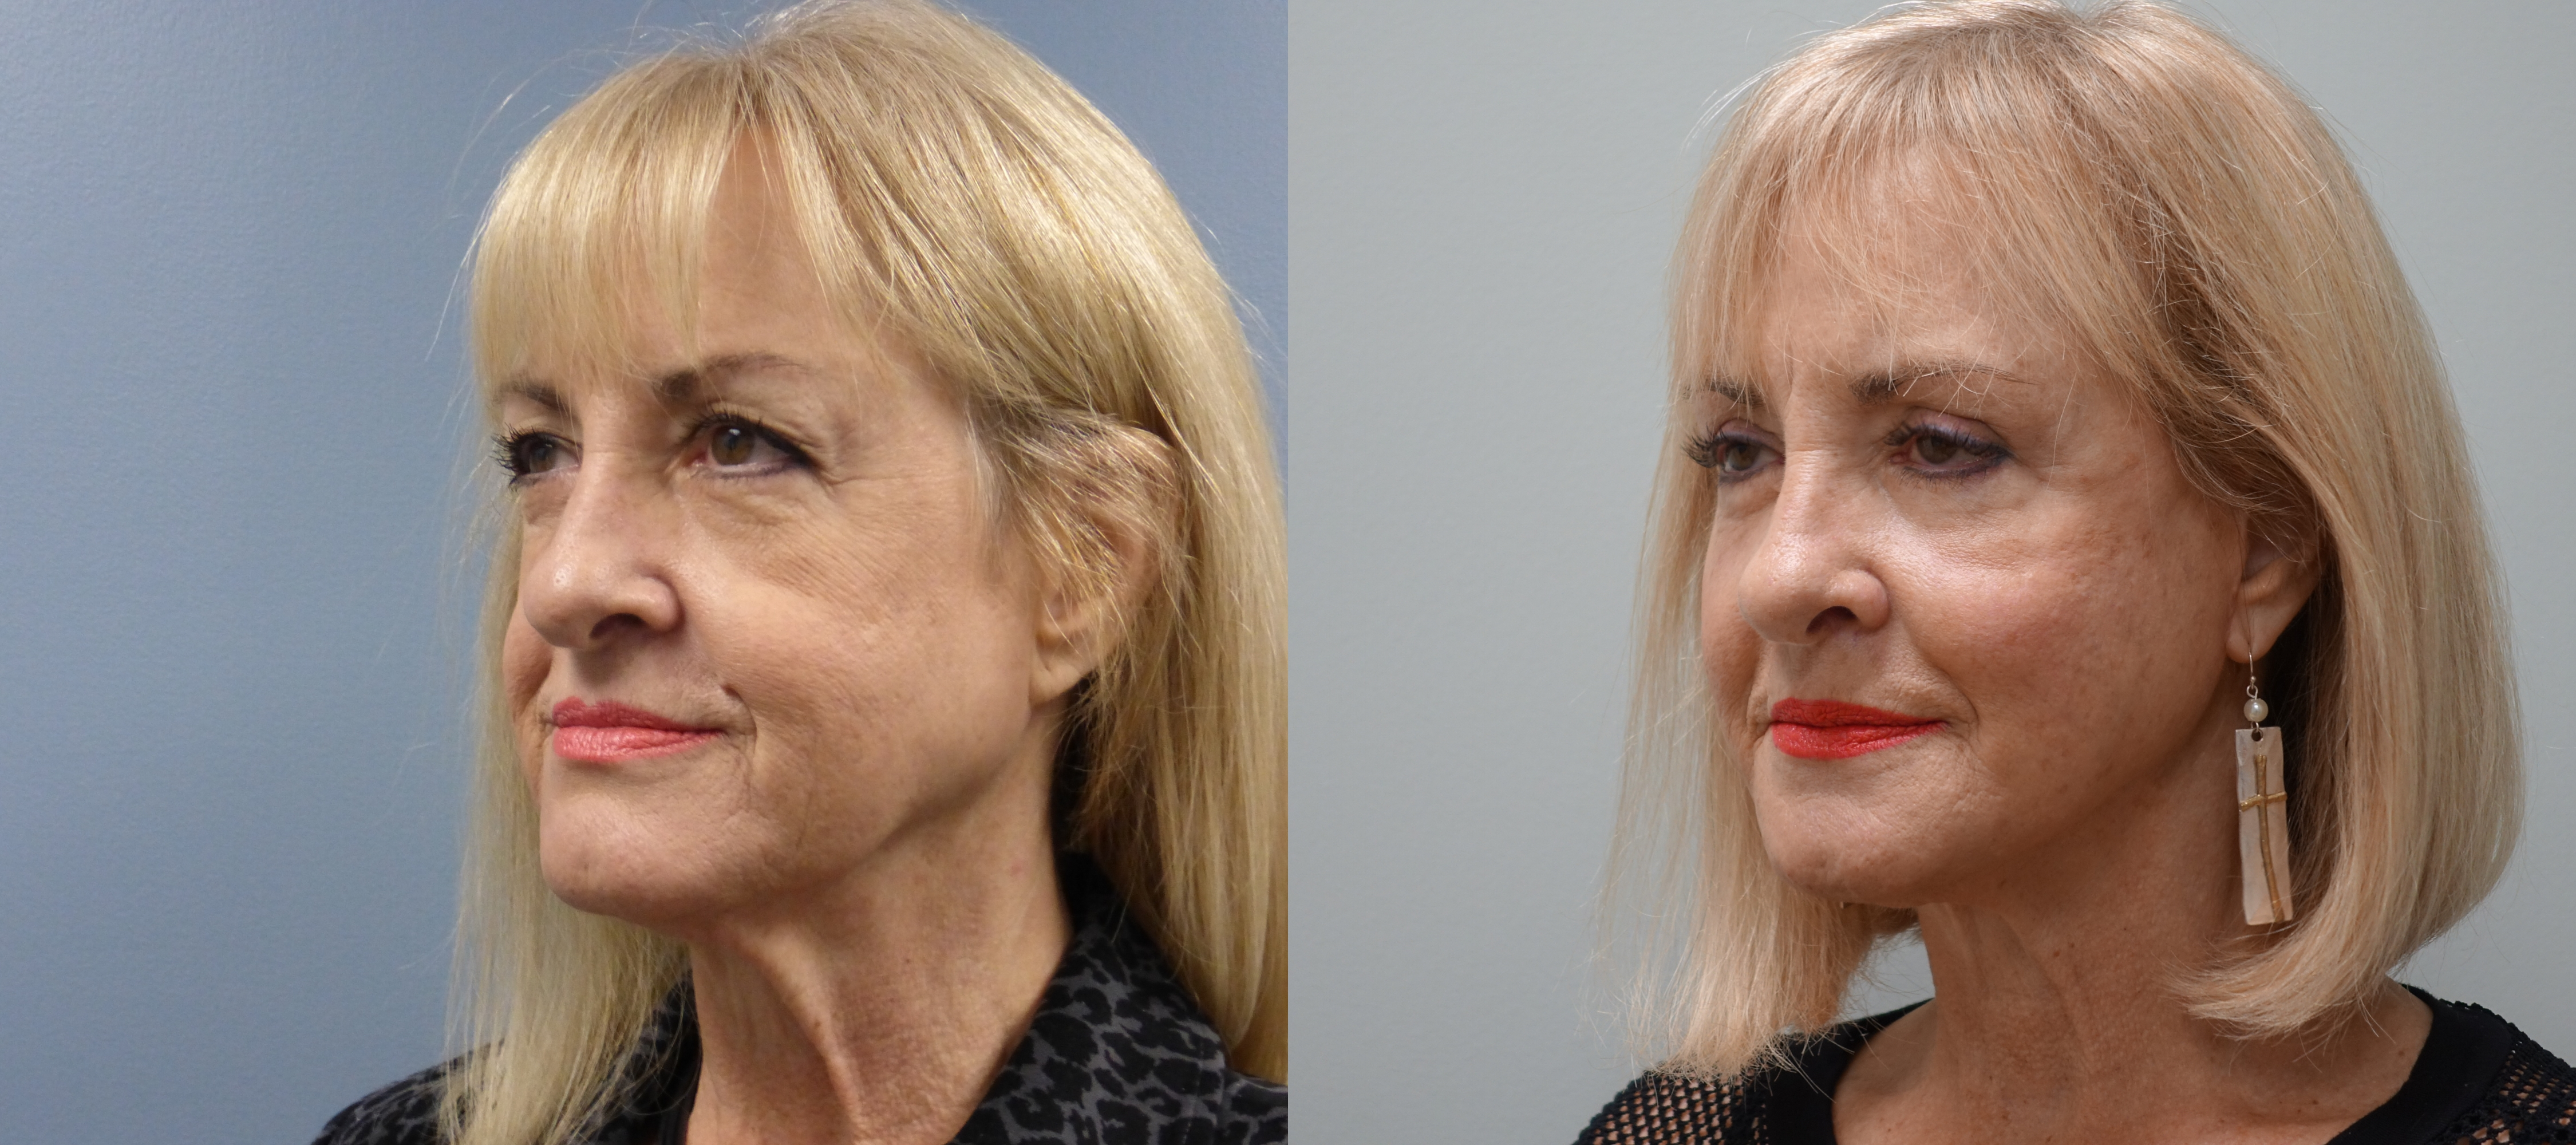 Before and After Facelift, eyelid lift and silicone implants on the bone under the lower lids.